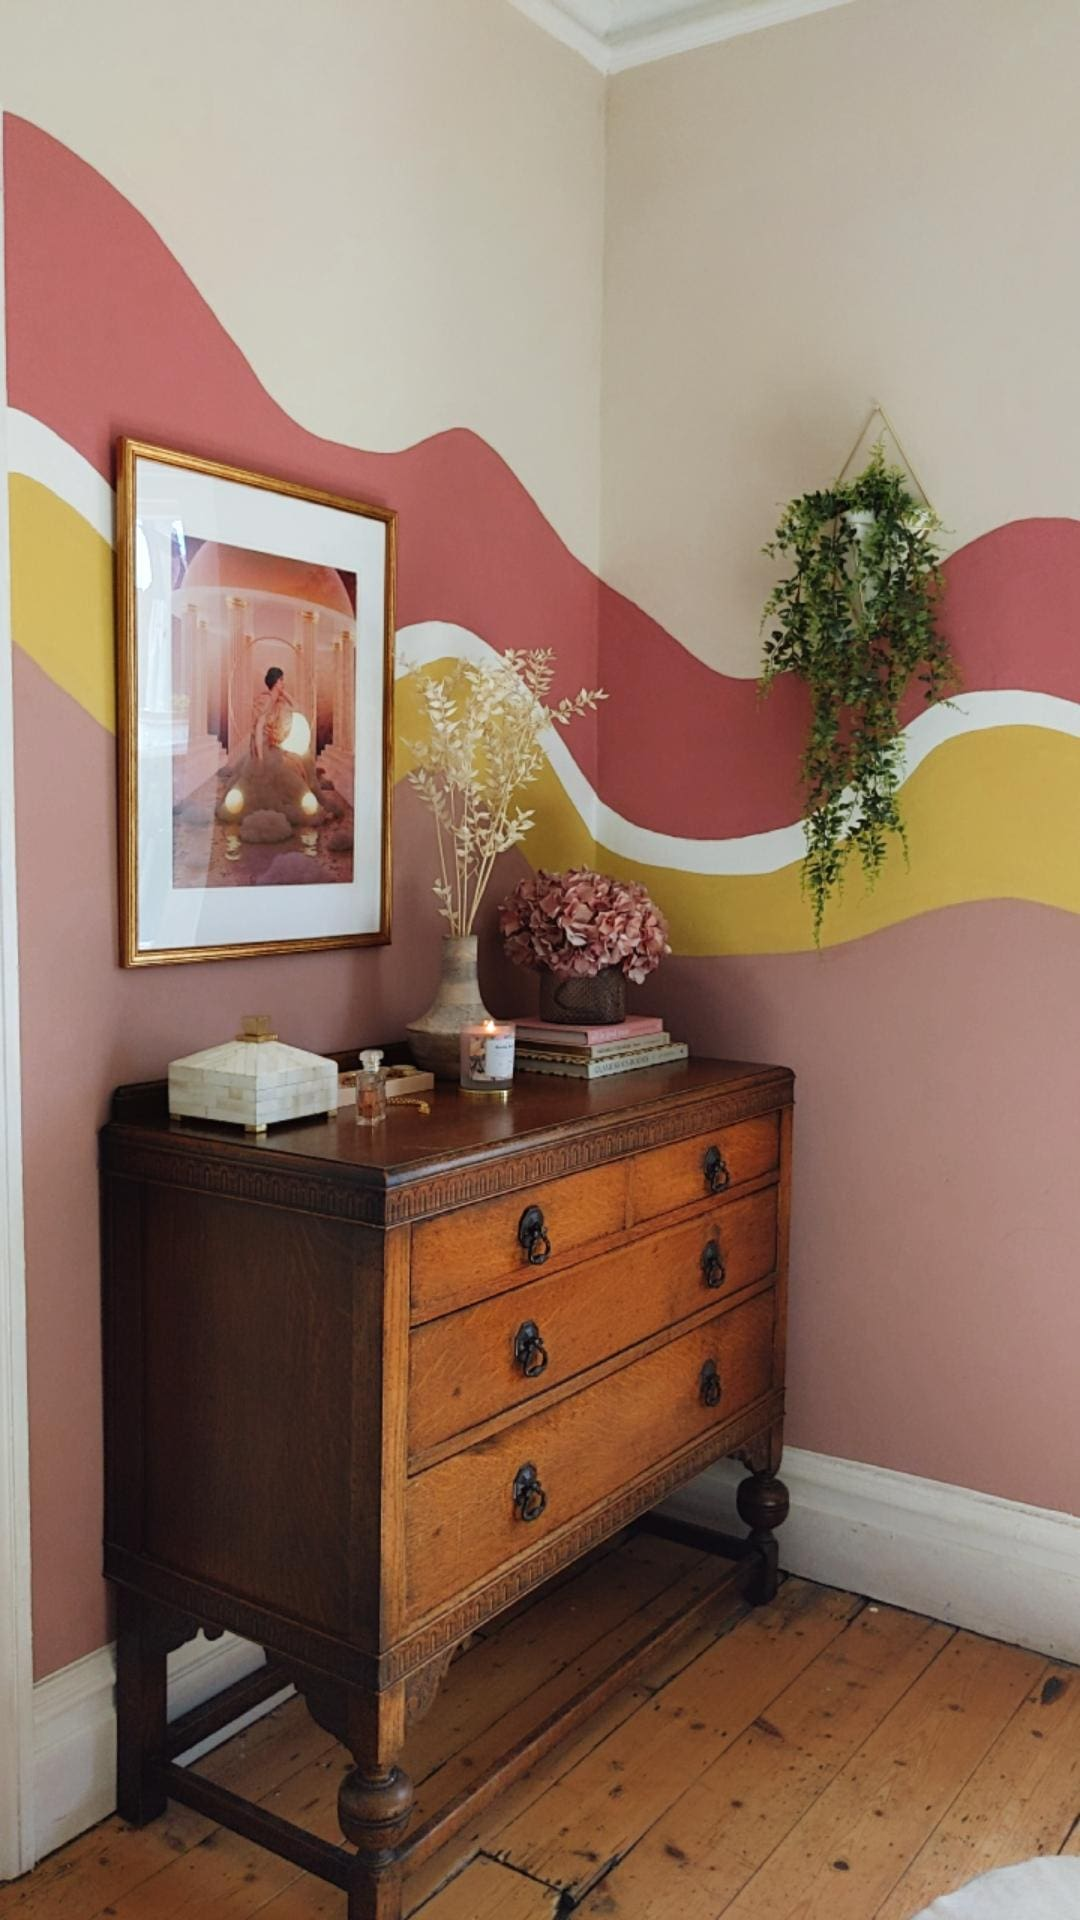 Organic free form colour blocks on wall in pinks and yellow with vintage chest of drawers and dried flowers